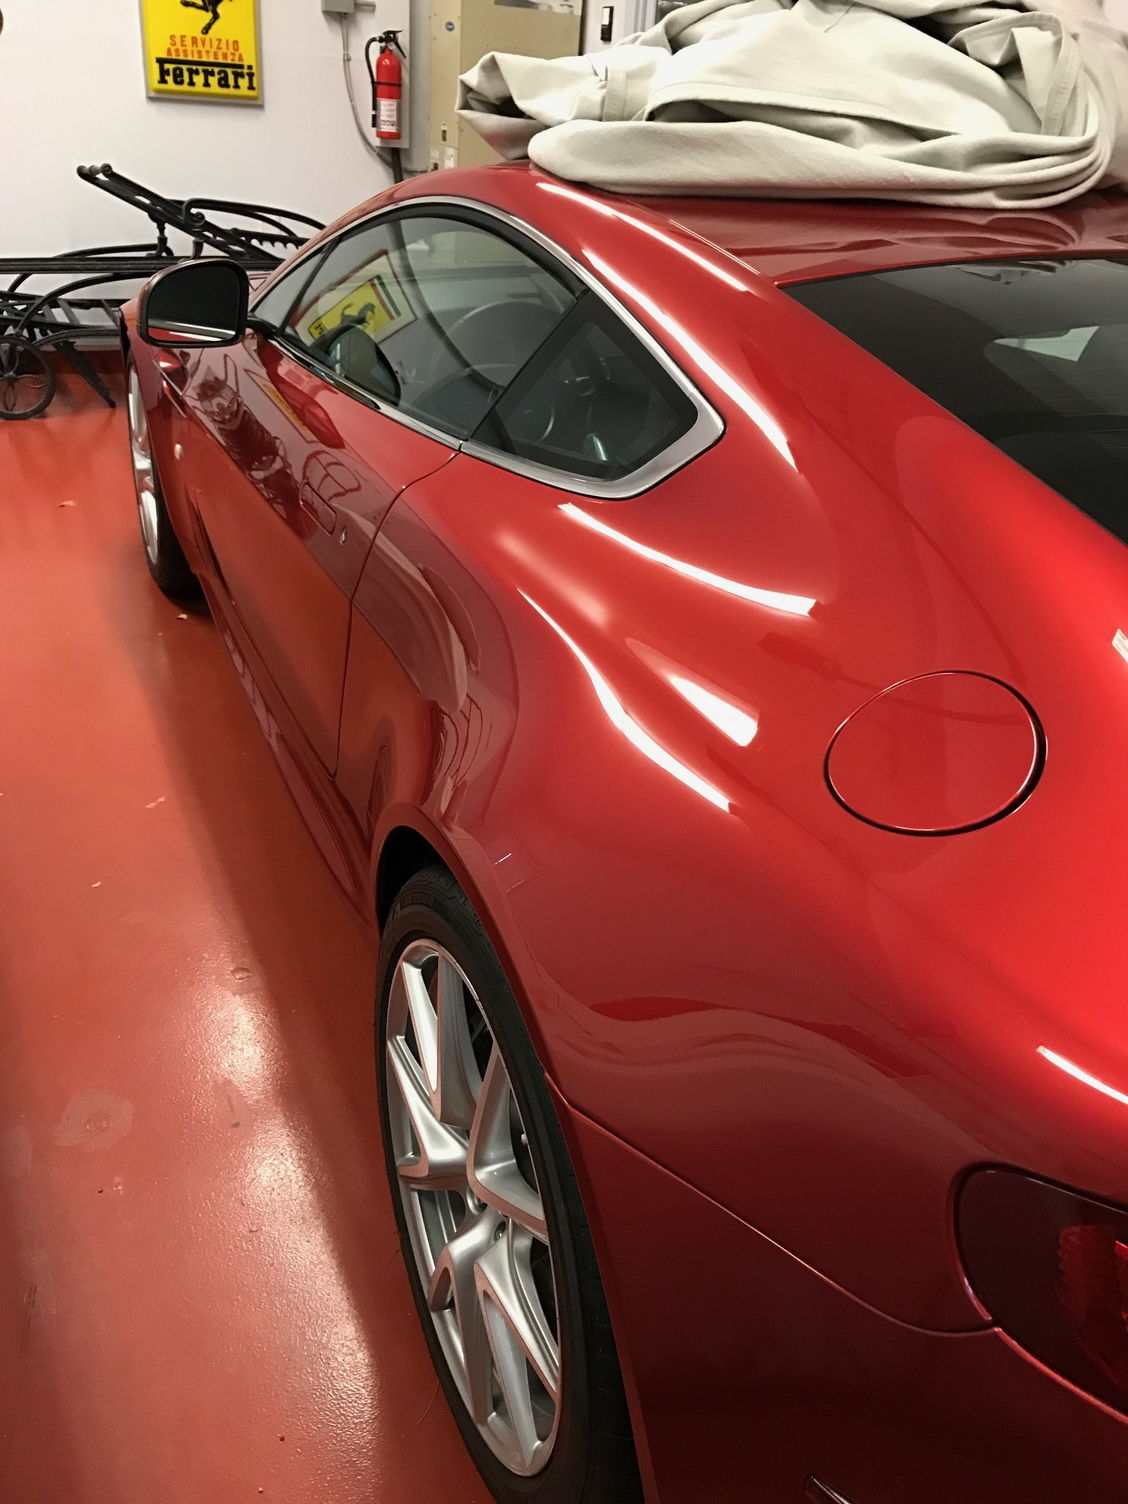 2009 Jaguar Xf Removal in addition 9202 Saturn 1 9l Sc Sl Sw Series Engine Motor Trans Mount Set Of 4 also Chevrolet Malibu Lt furthermore 1992 Cadillac Fleetwood Rear Wheel Seal Repairs likewise Fuse Box Diagram 4eb9478ff27a52b5. on aston martin vantage oil filter